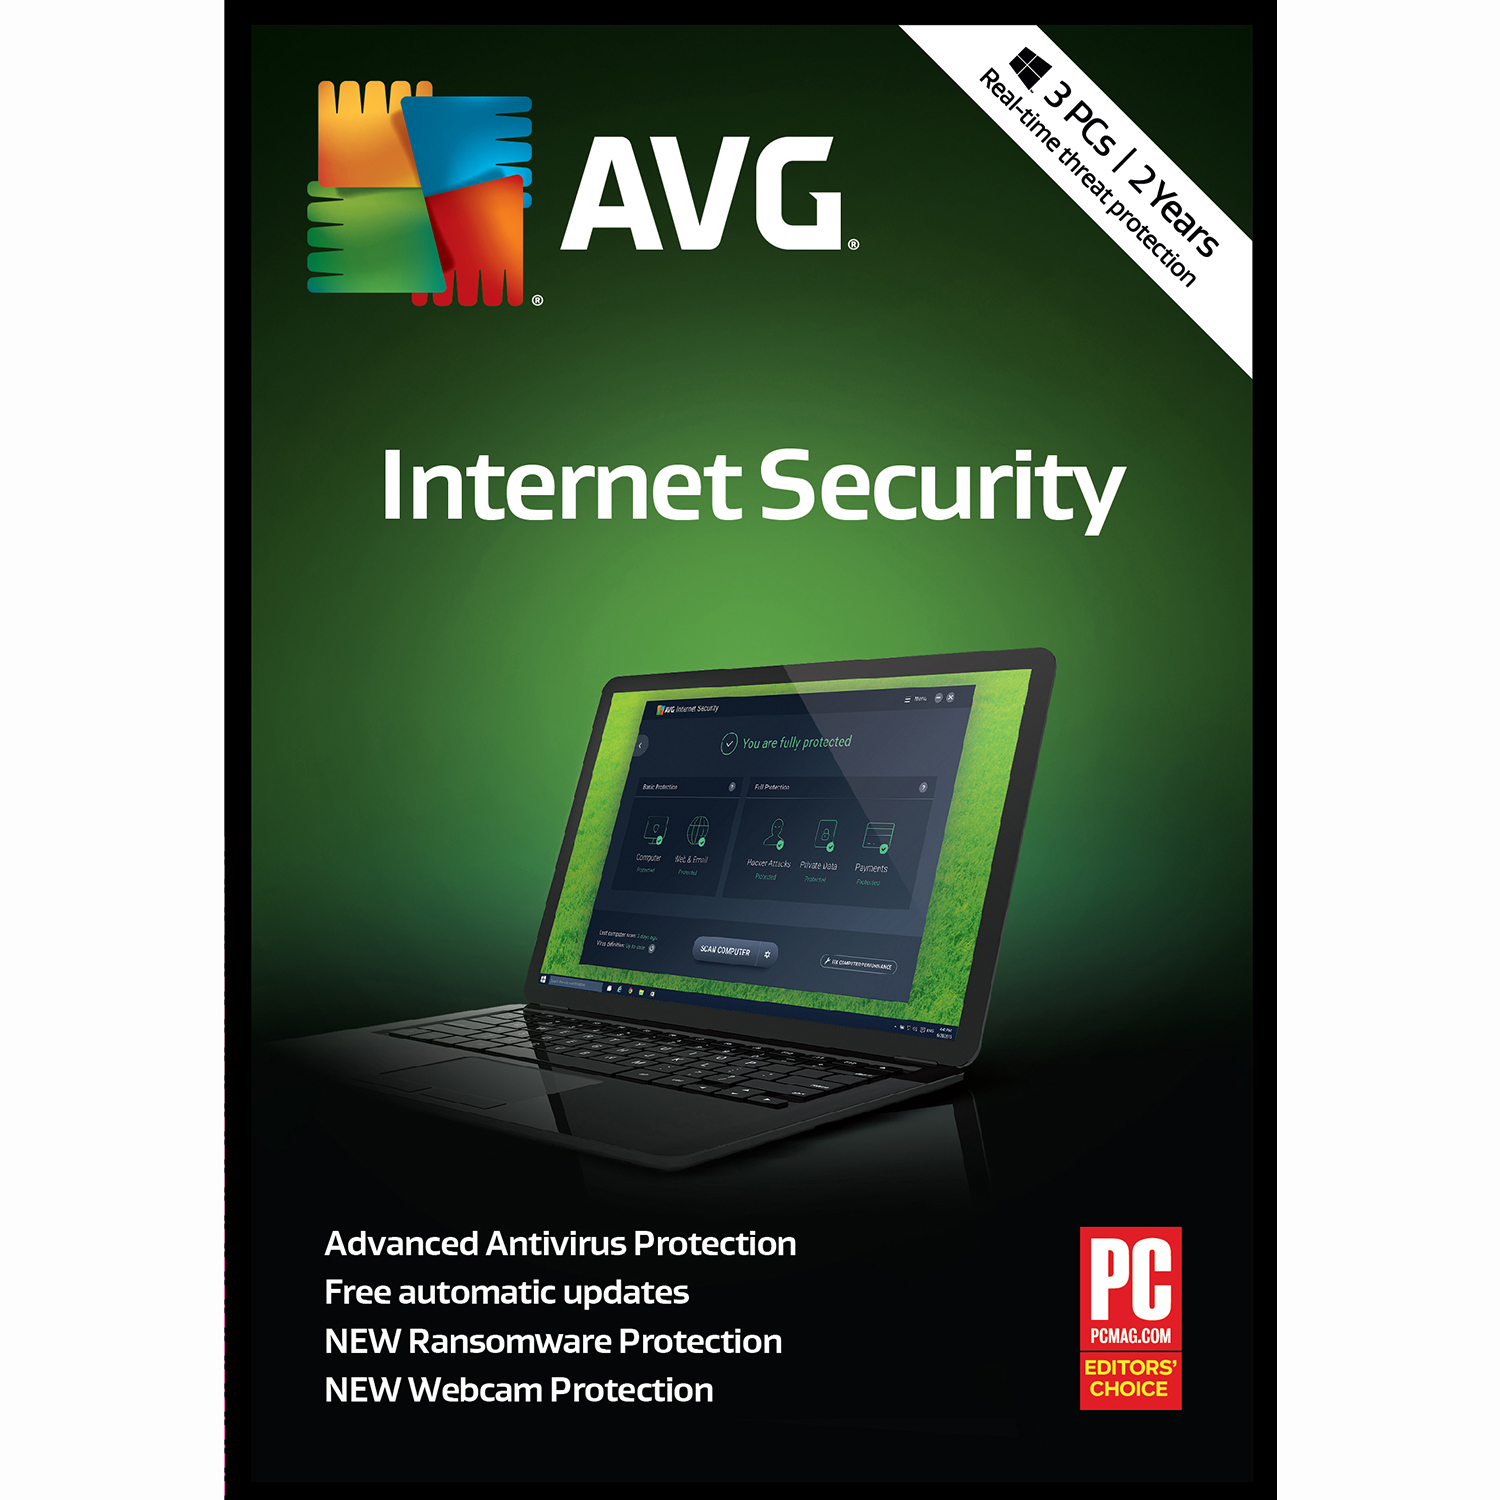 AVG Internet Security 2018, 3 PCs 2 Years [Online Code]